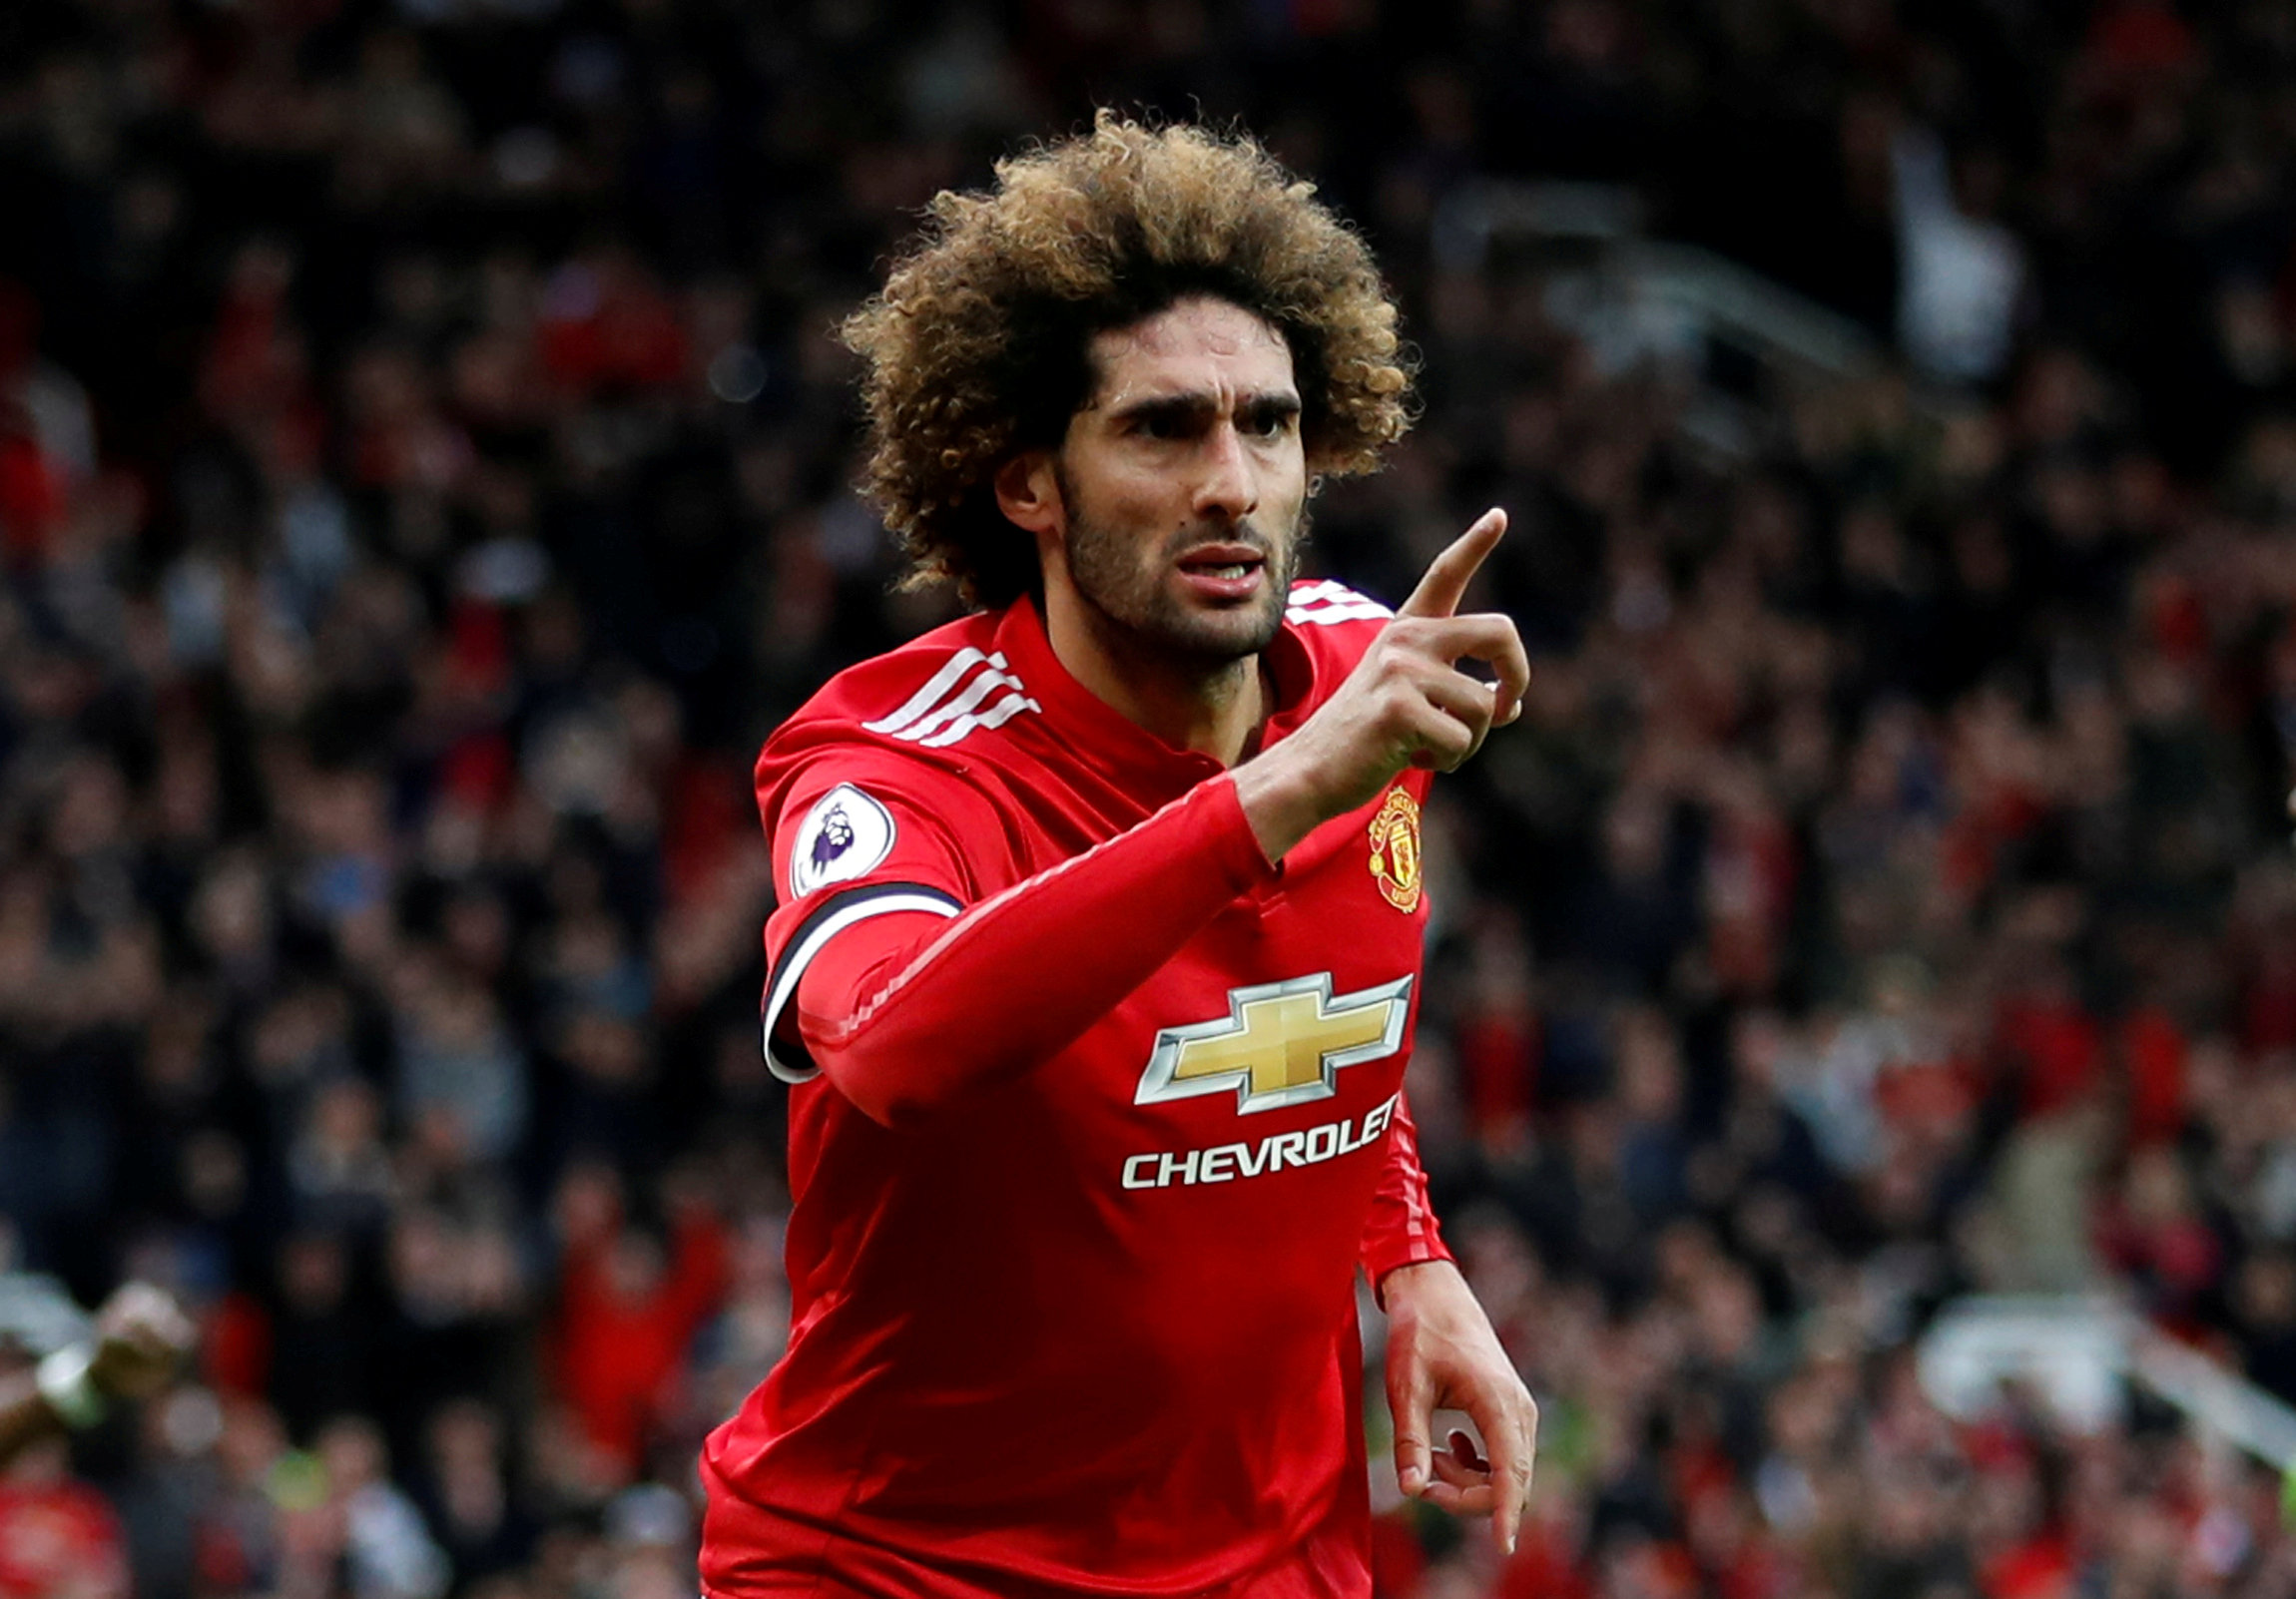 'This World Is Not Ready' – United Fans On Social Media In Shock As Fellaini Reveals New Haircut